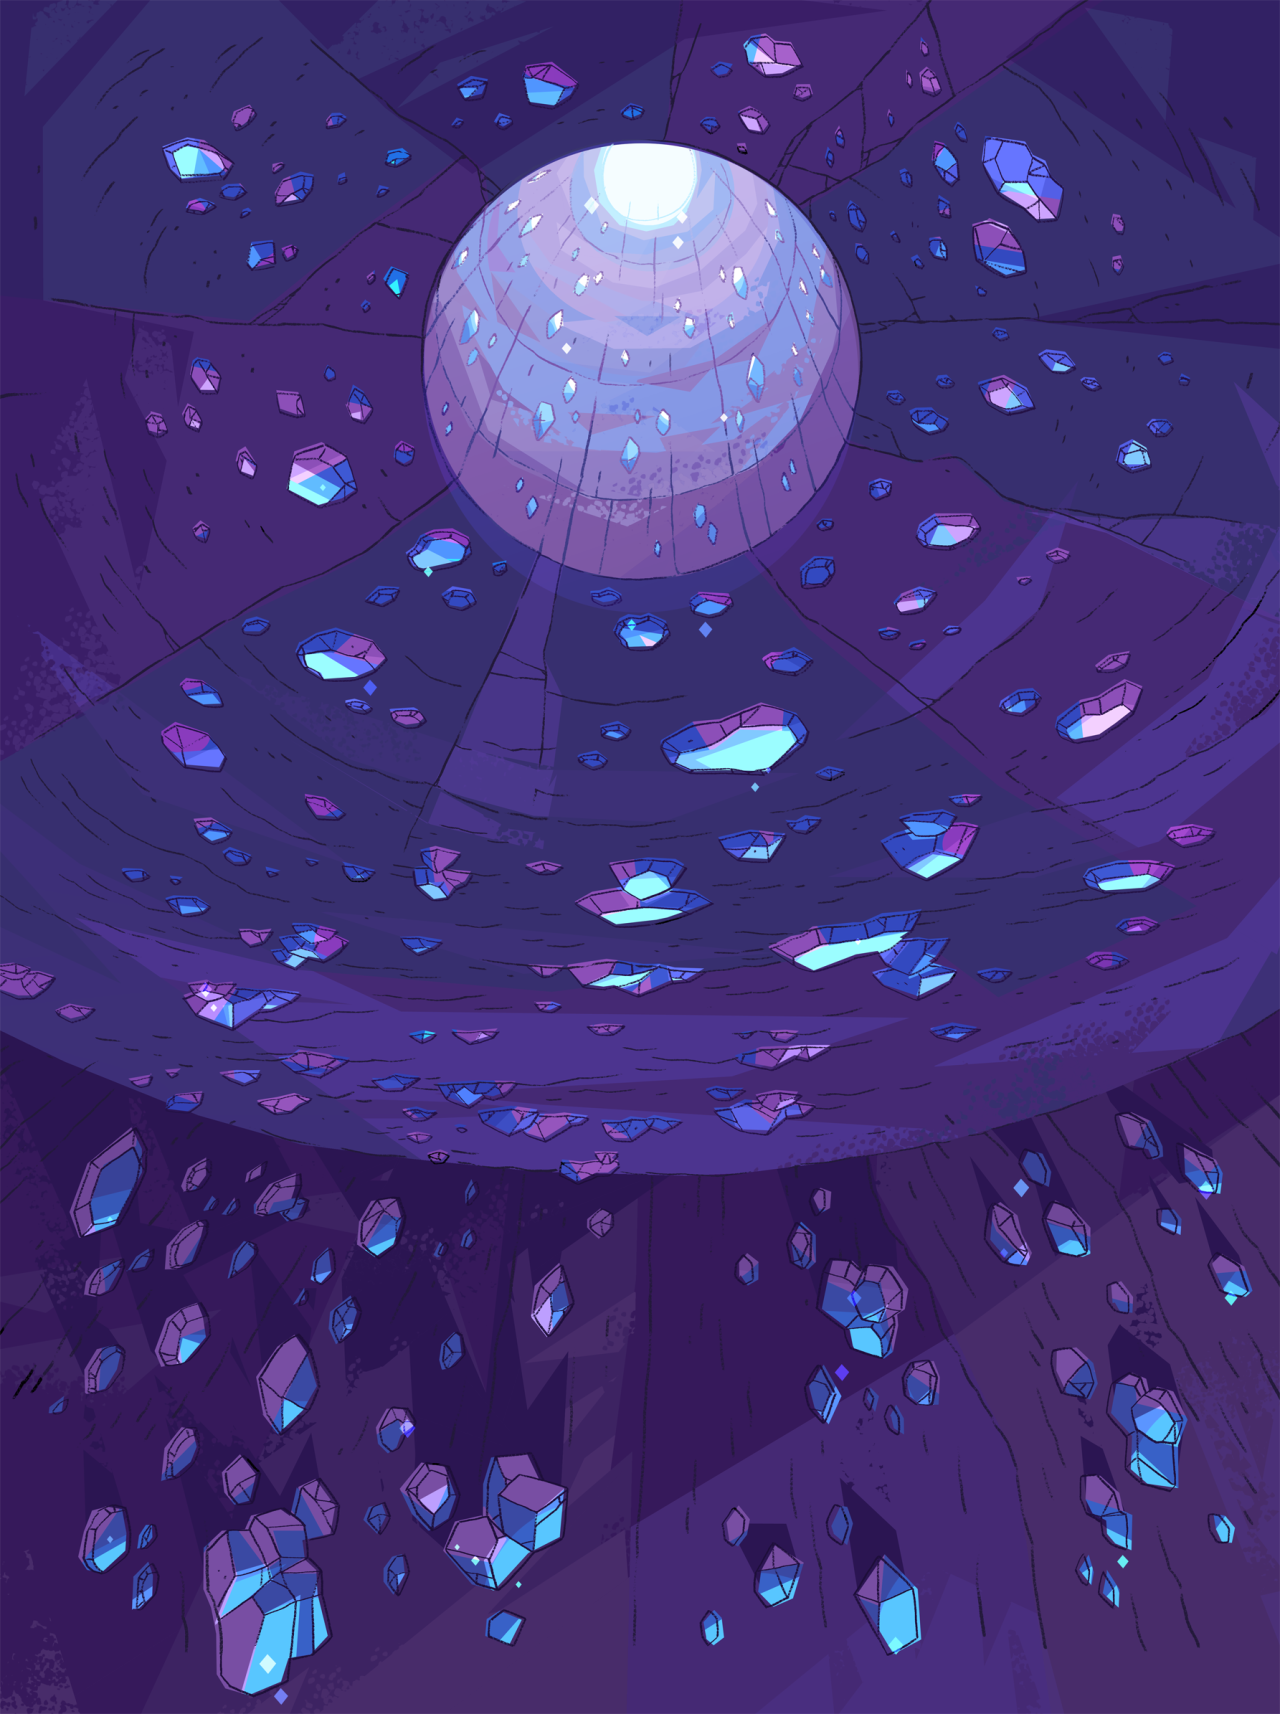 Steven Crewniverse Behind The Scenes Universe A Selection Of Backgrounds From